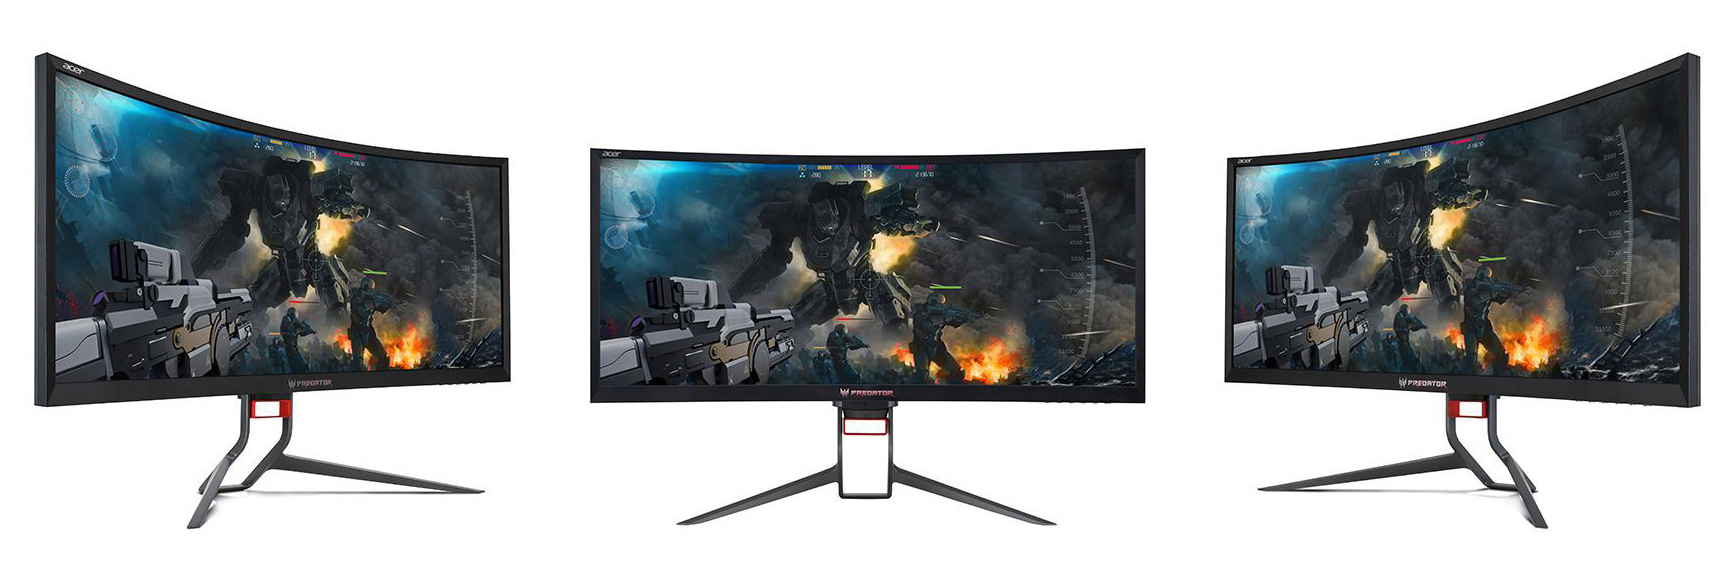 Acer Predator Z35P review: oversized impact - Review